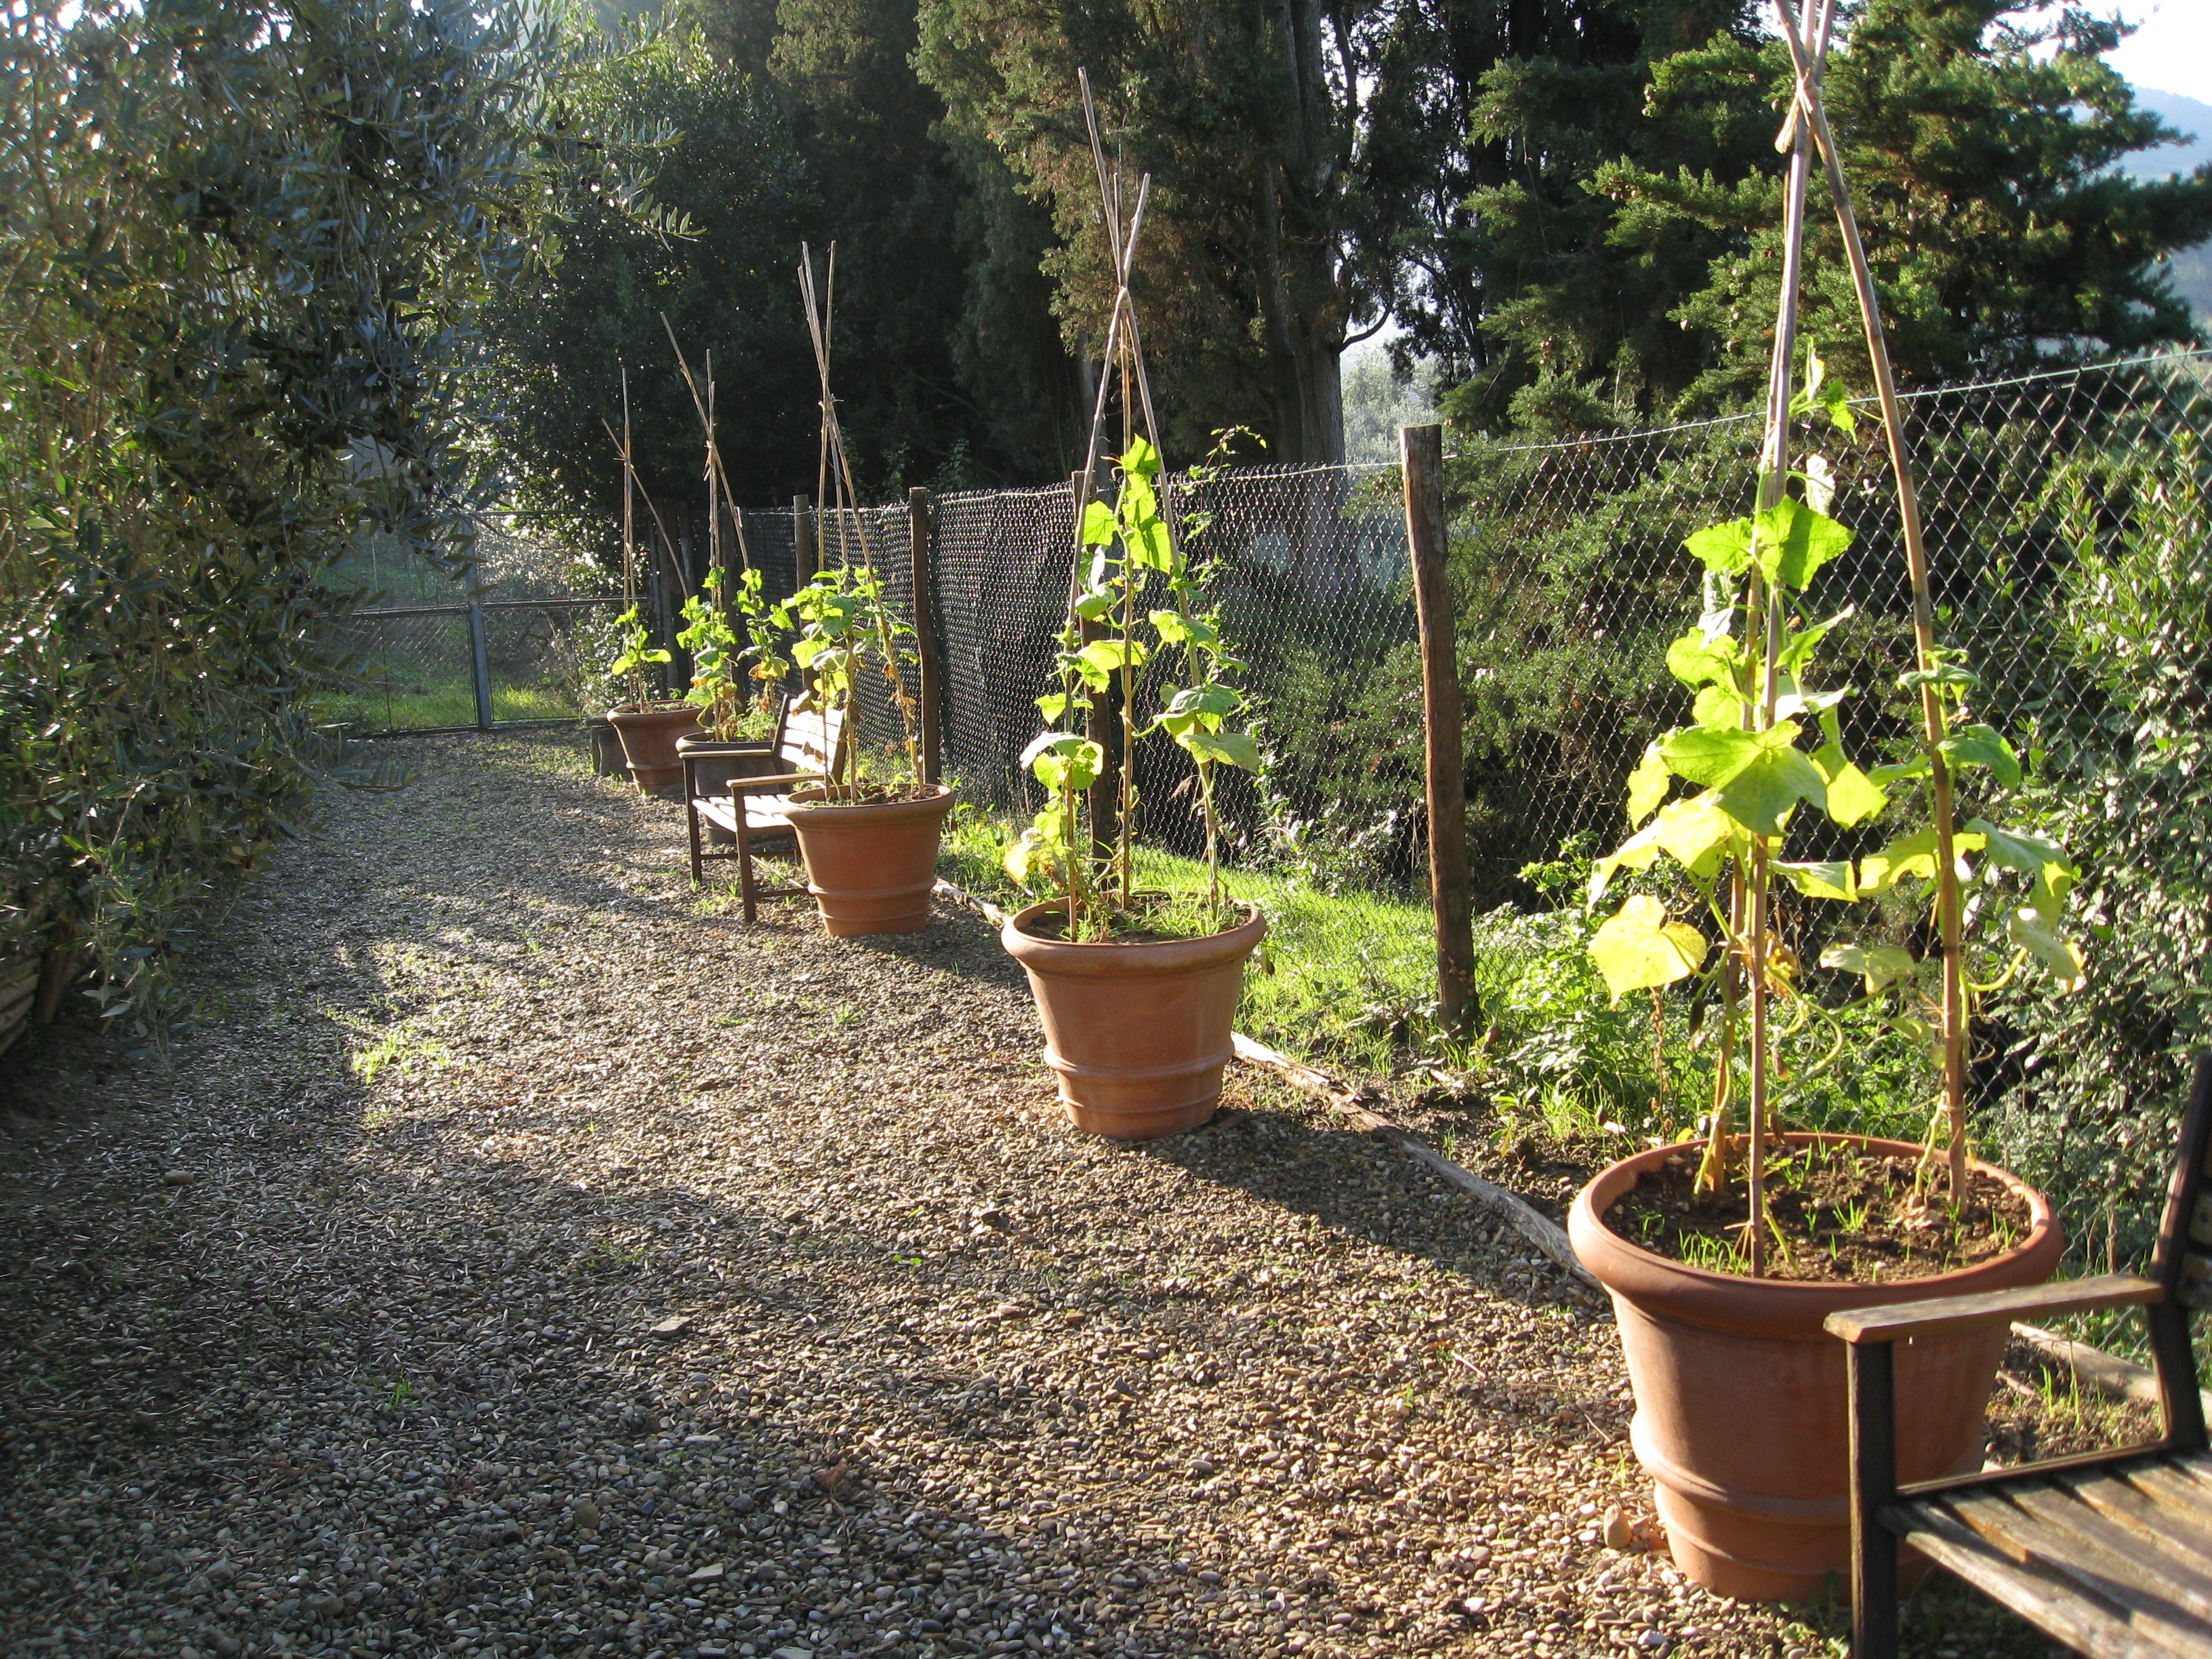 Strawberries and cucumbers left from summer fill terra cotta pots to the north.